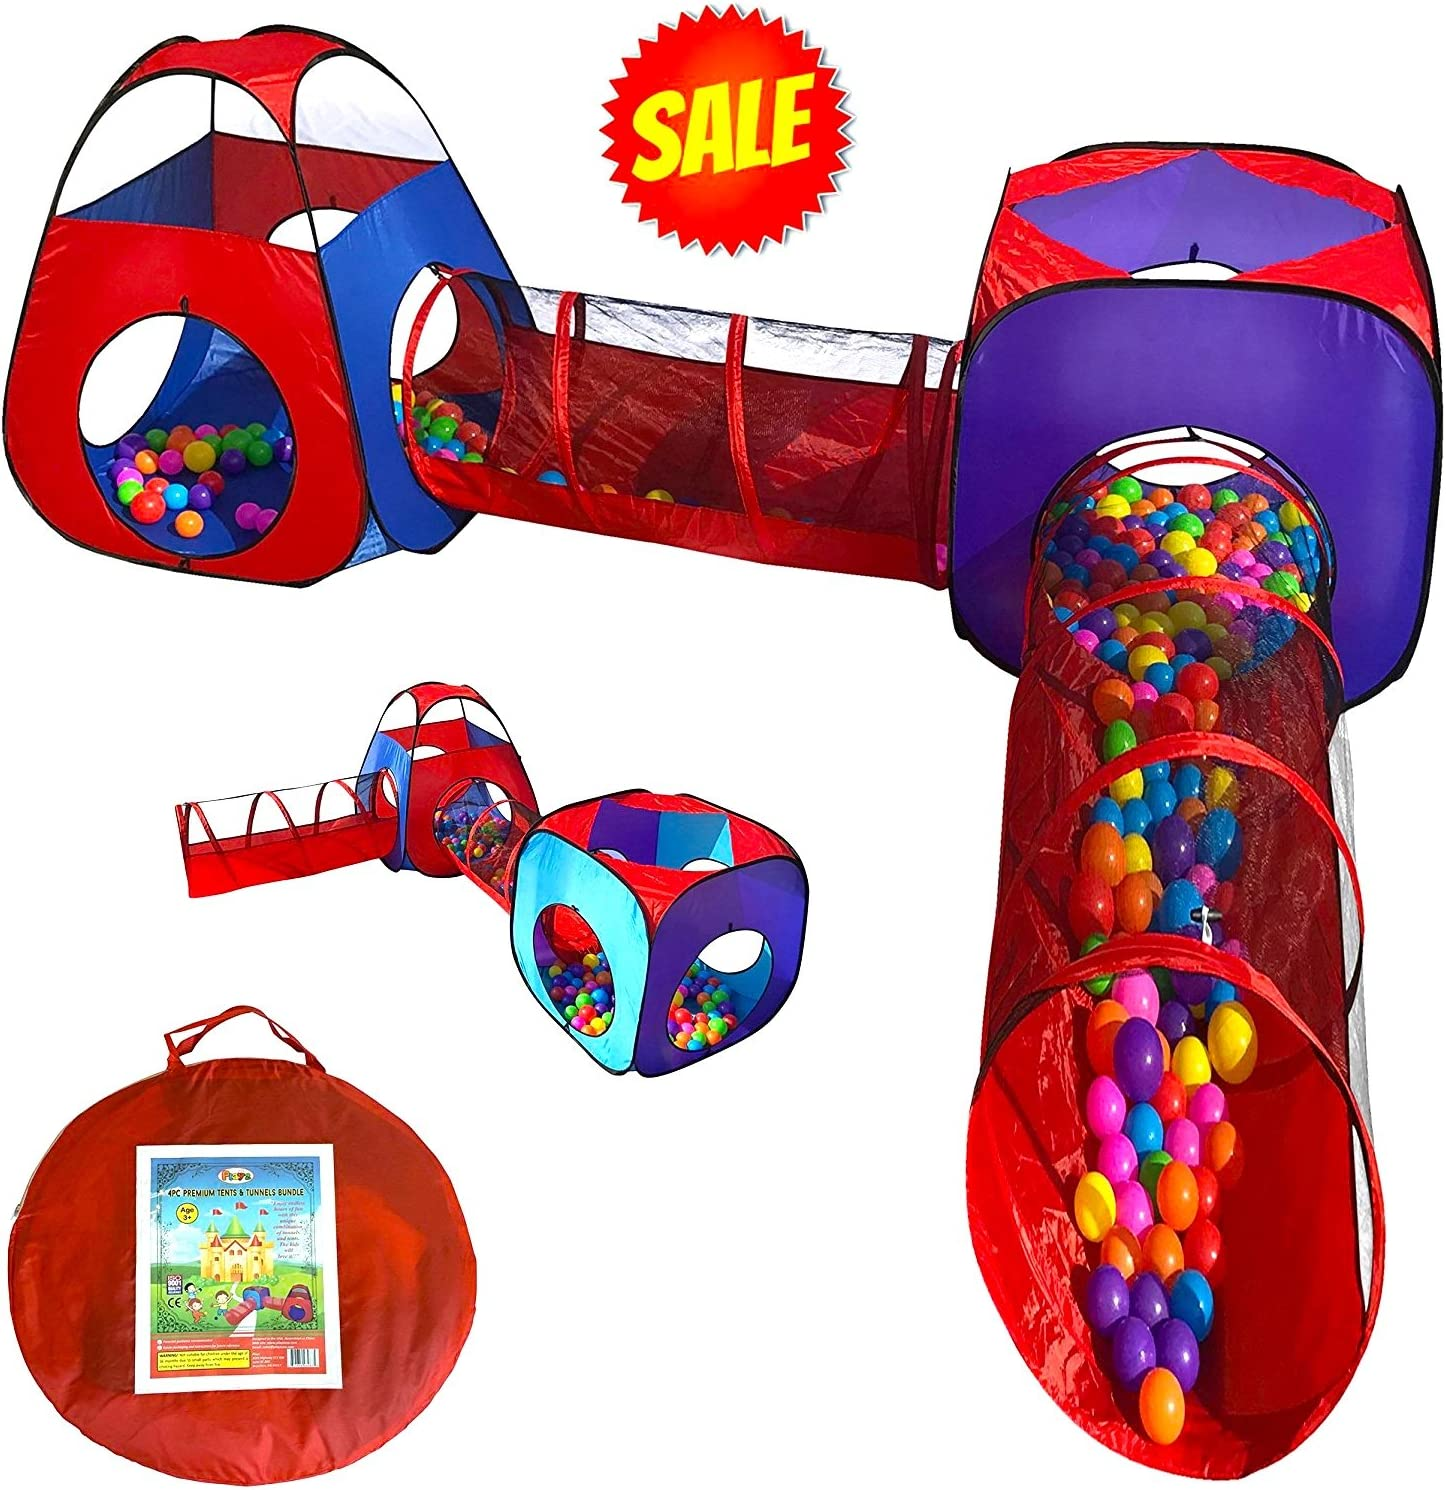 Most wished for  sc 1 st  Amazon.com & Amazon.com: Play Tents u0026 Tunnels: Toys u0026 Games: Play Tents Play ...